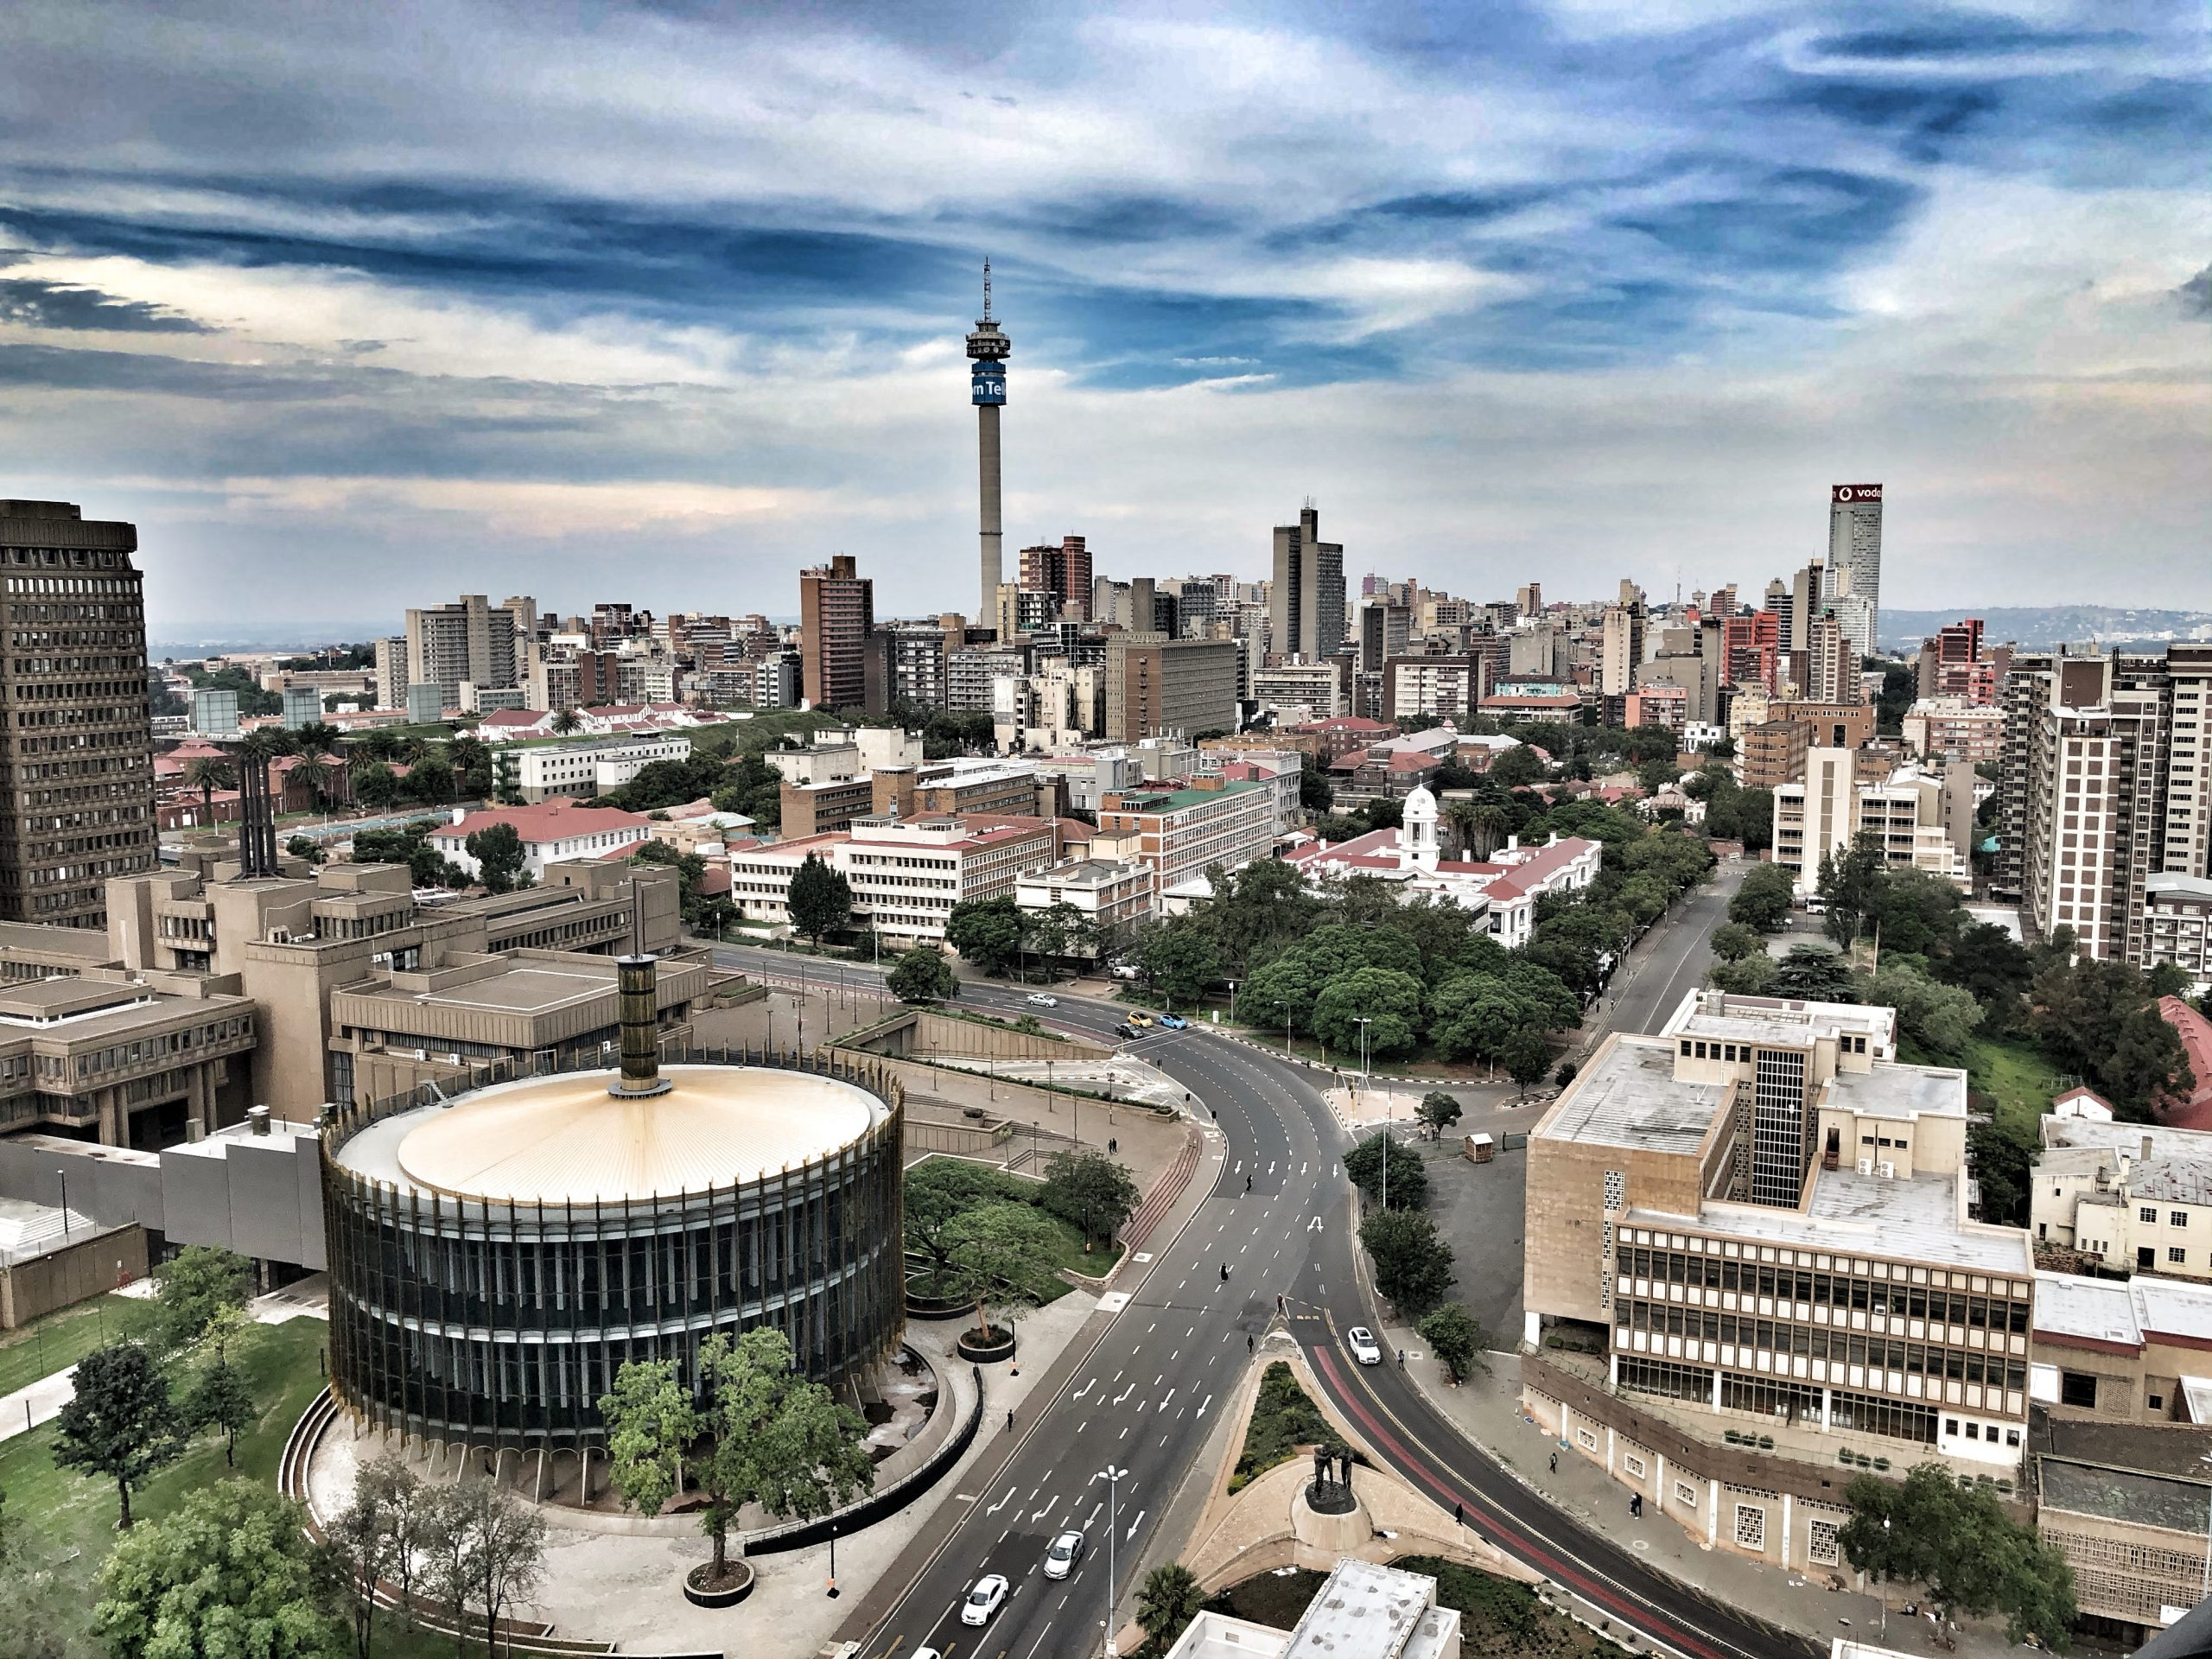 South Africa - 1